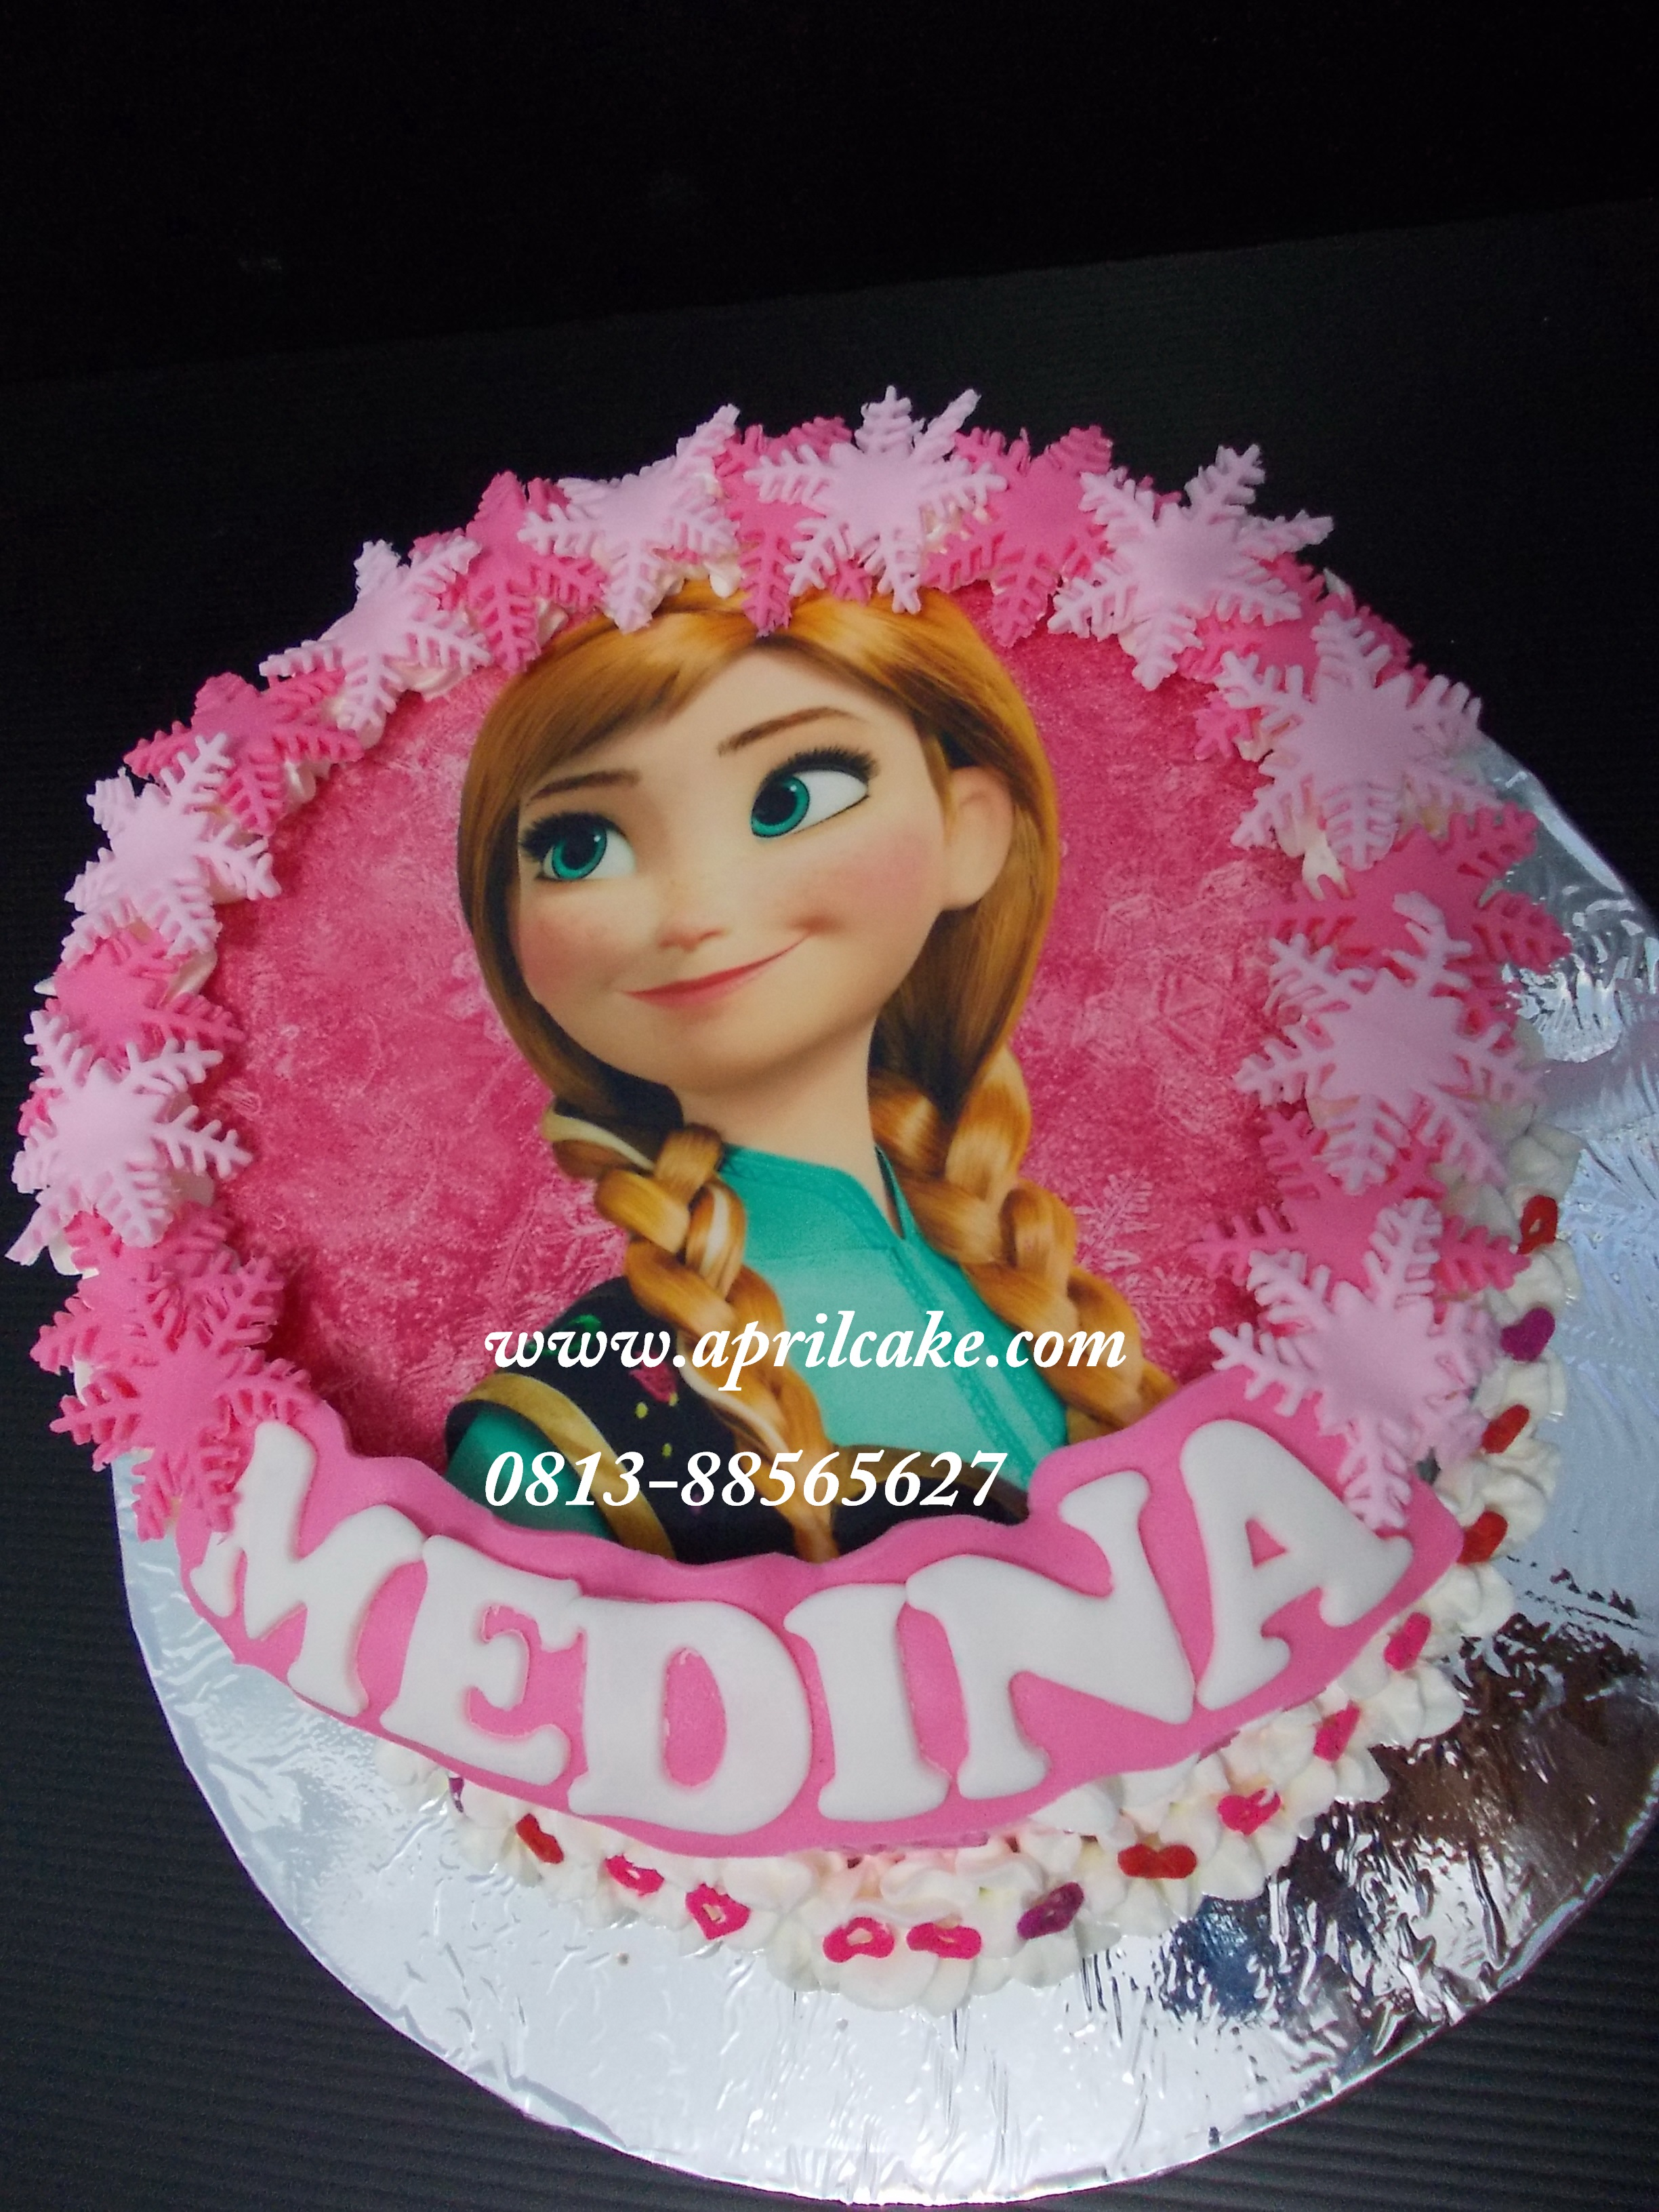 All About Frozen April Cake